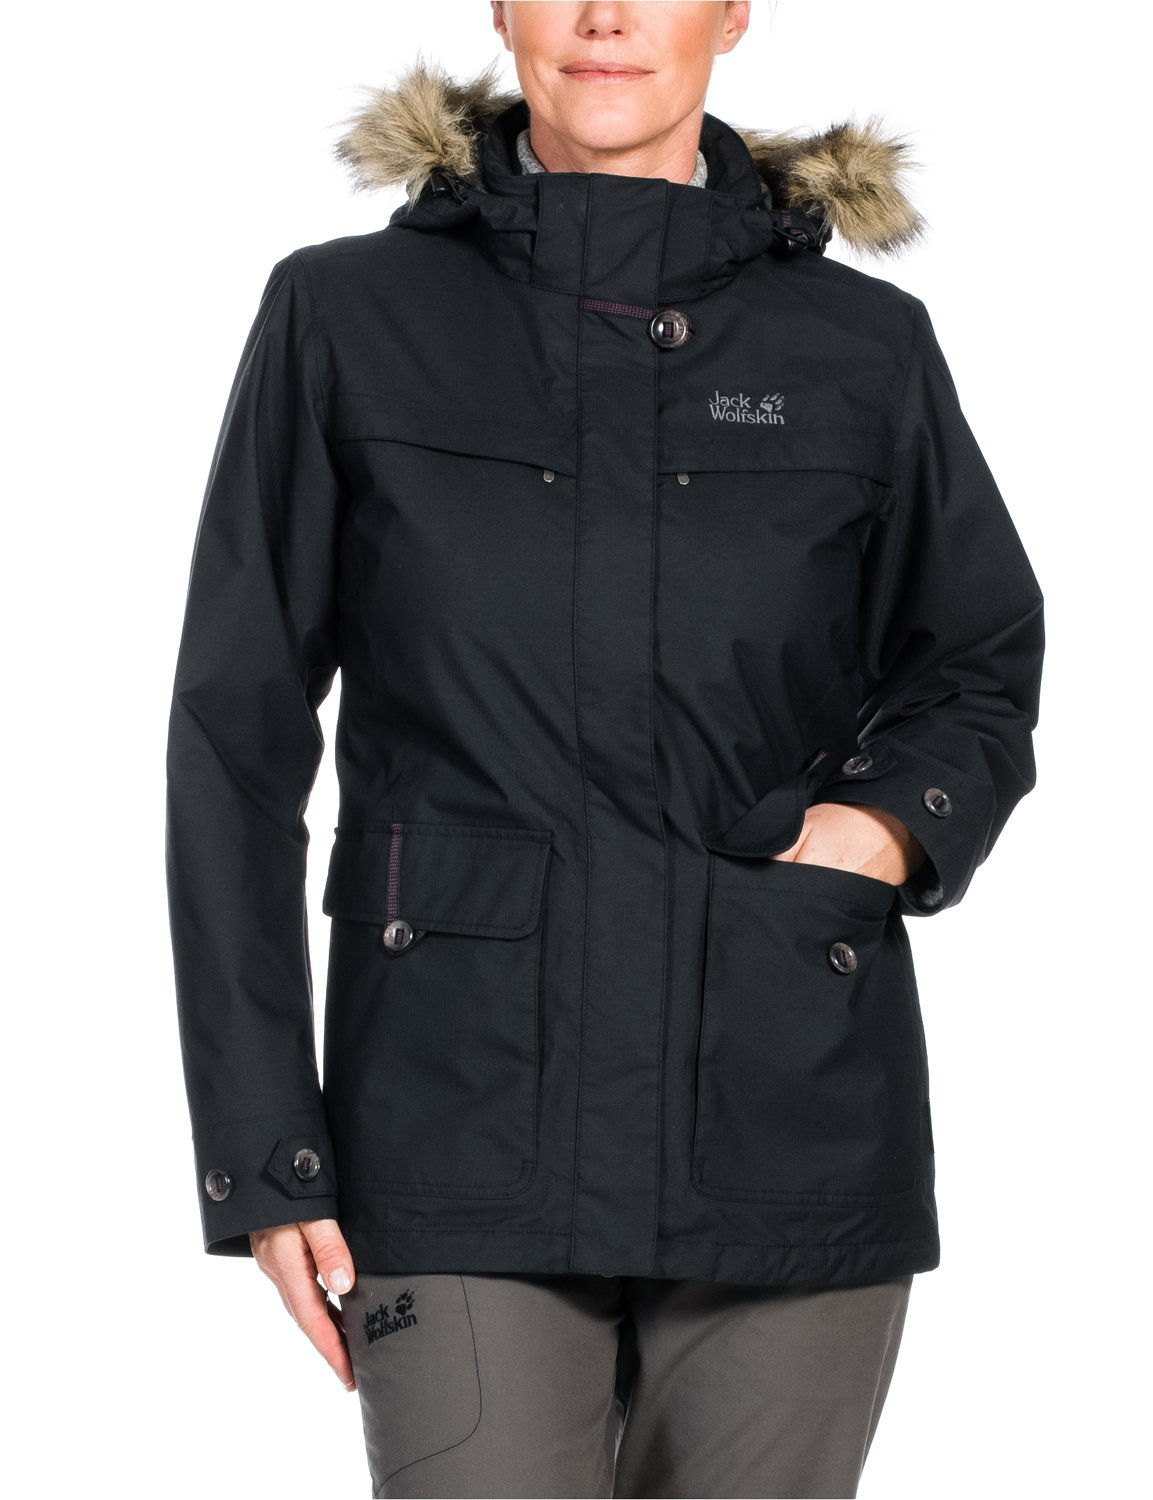 jack wolfskin damen 3 in 1 jacke parka corner brook. Black Bedroom Furniture Sets. Home Design Ideas